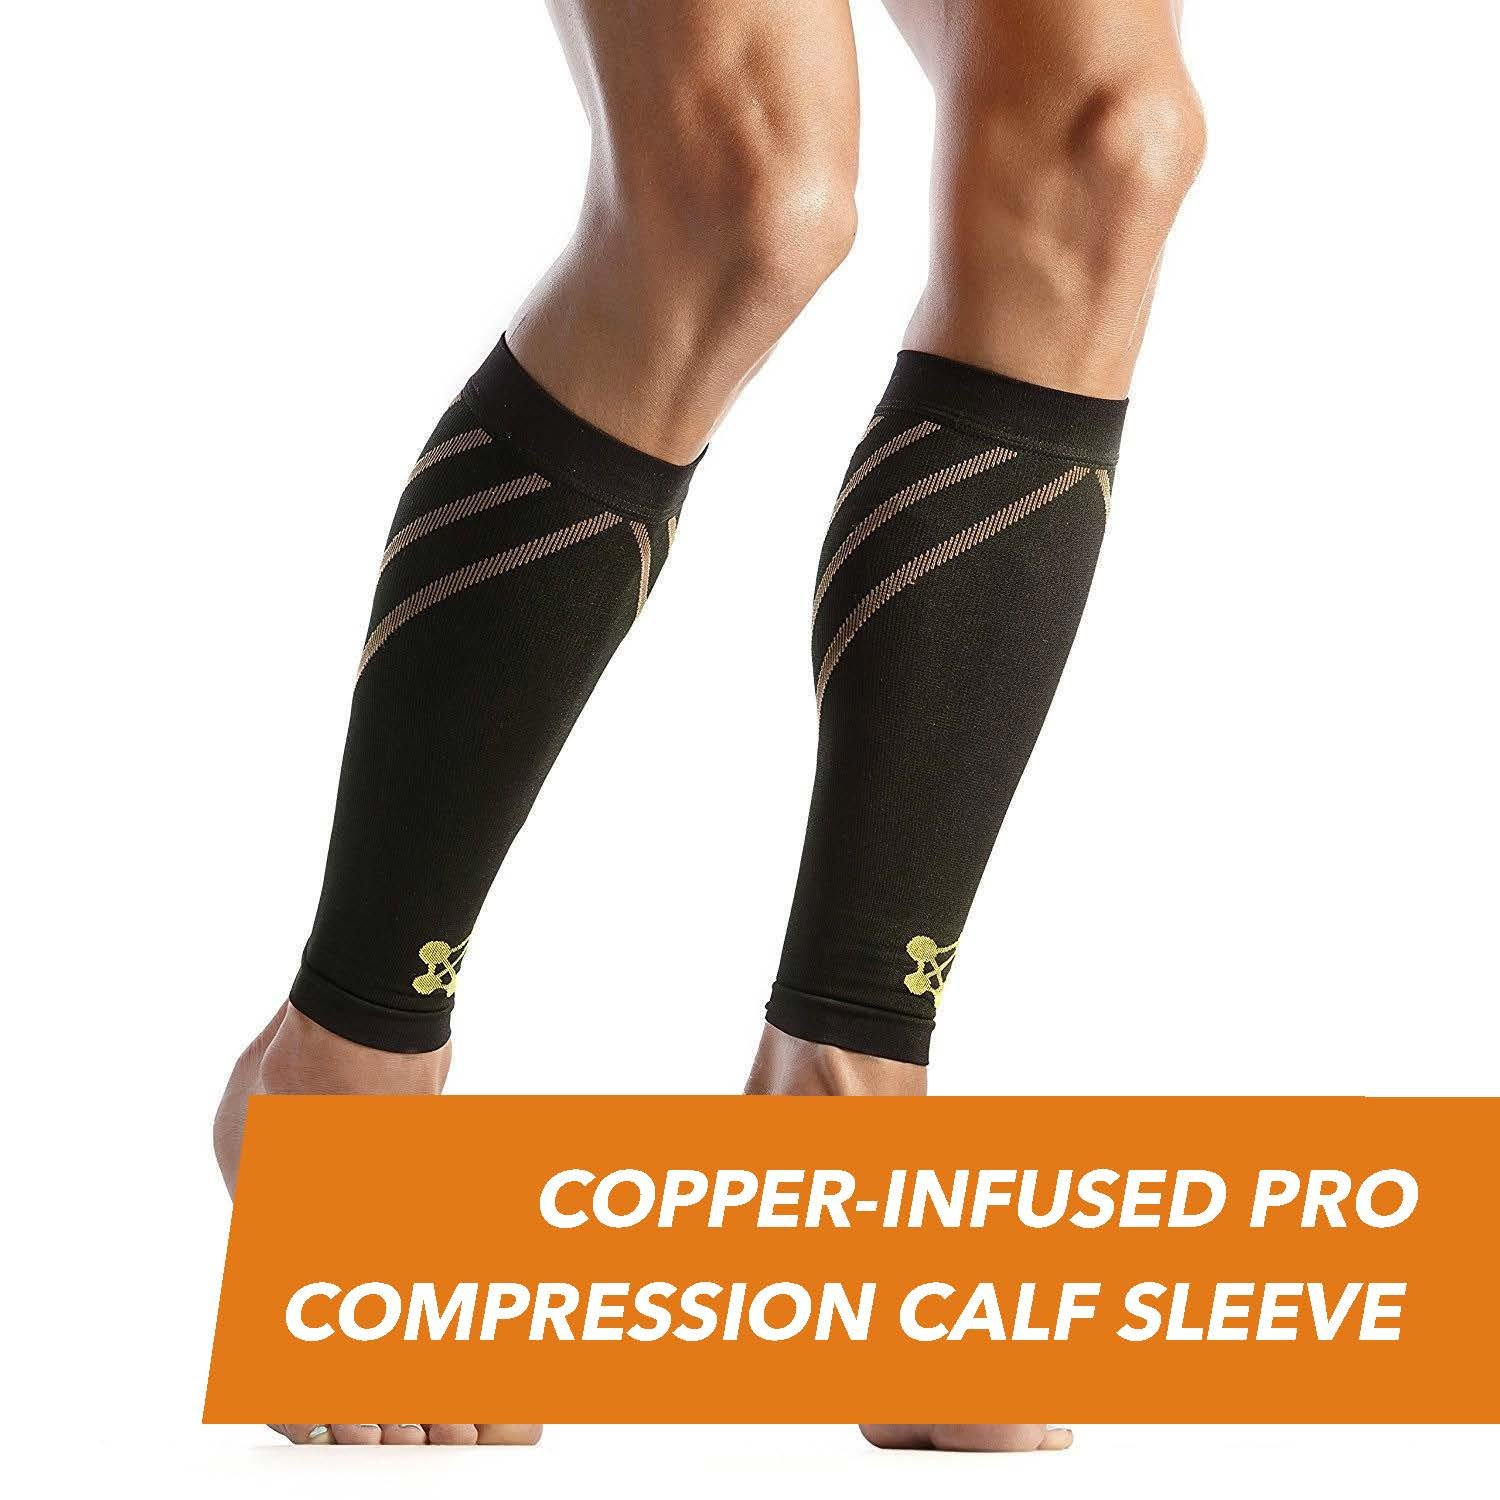 CopperJoint PRO Compression Calf Sleeve, Pair (L) by CopperJoint